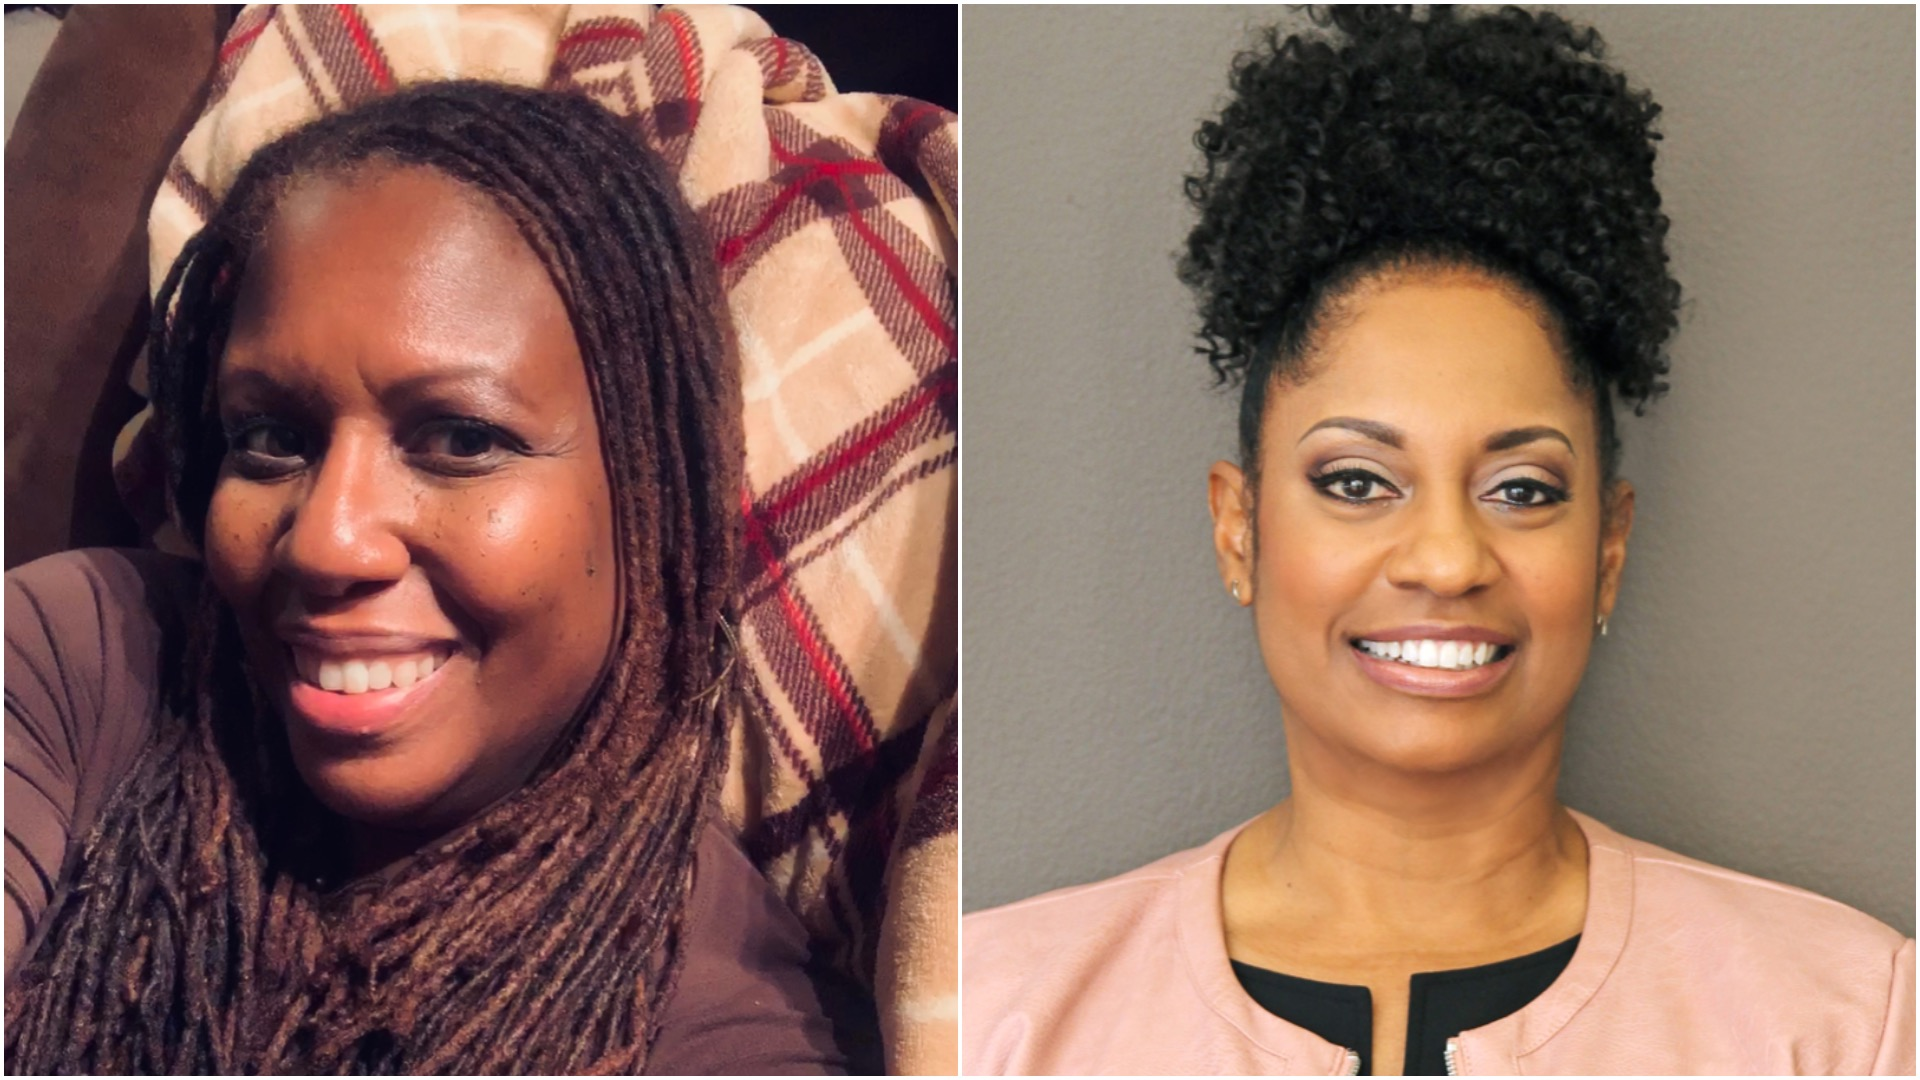 We who wear natural hairstyles shouldn't have to change it for employment  | Tammy C. Barney